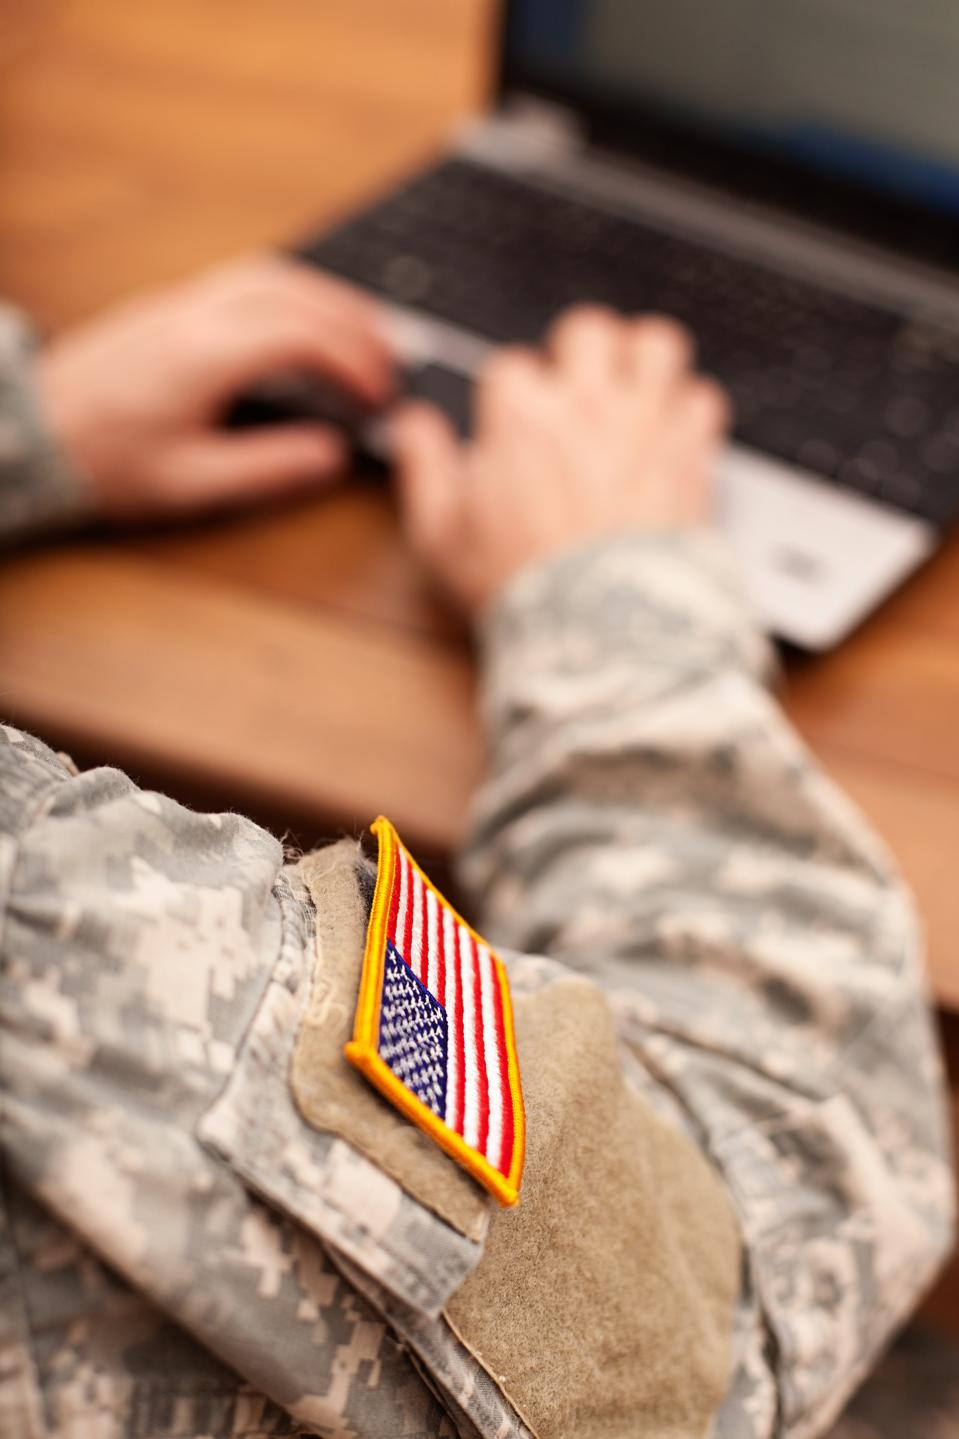 U.S. Army Hacked By 52 Hackers In Five Weeks—Here's Why